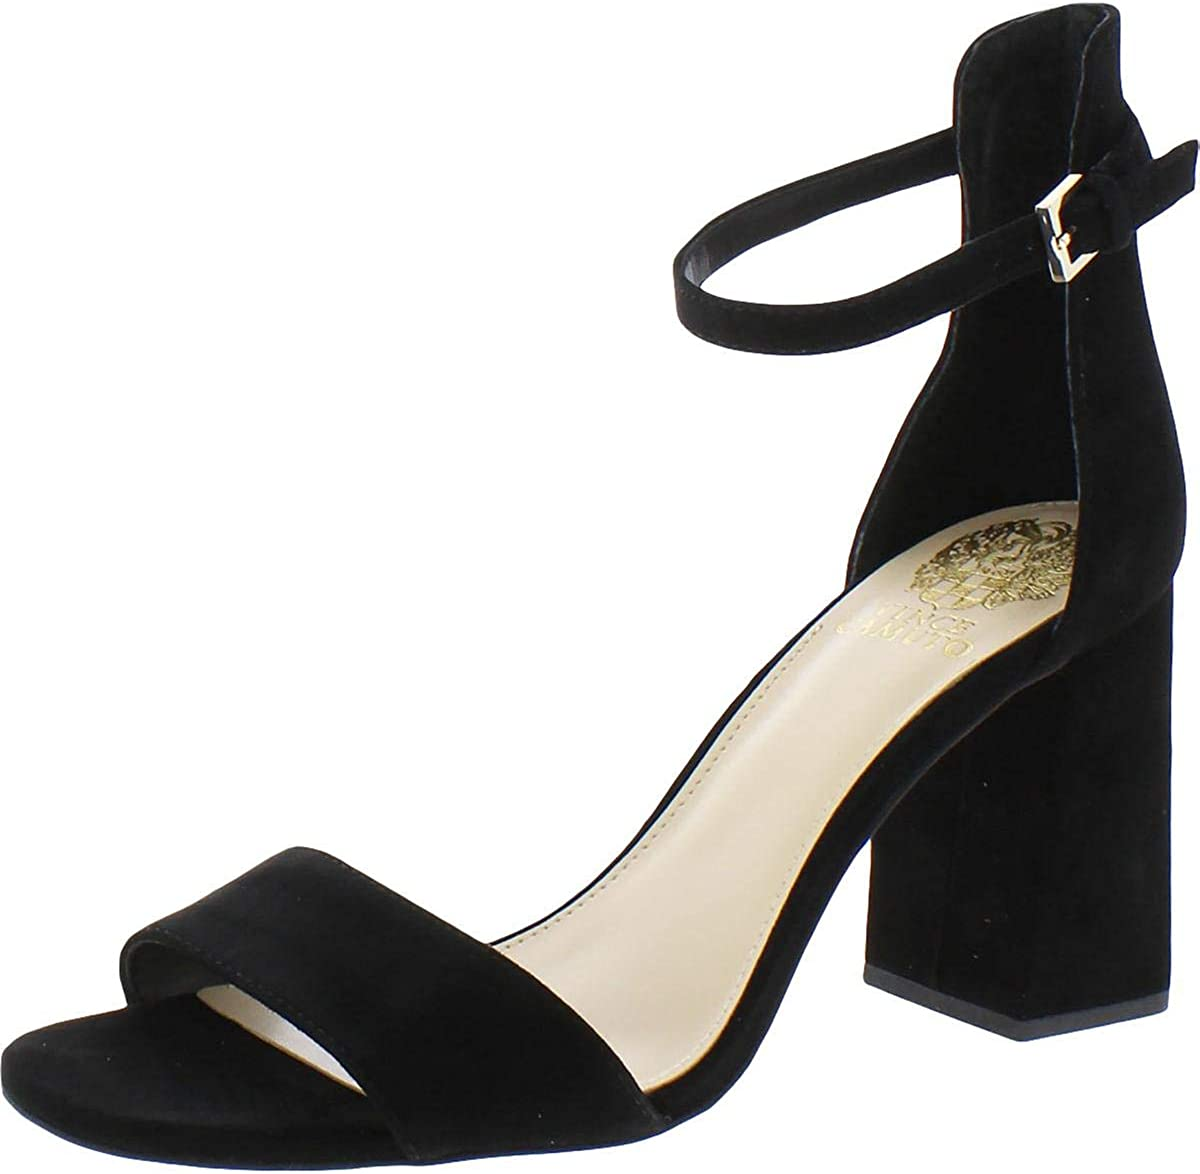 Vince Camuto womens Winderly